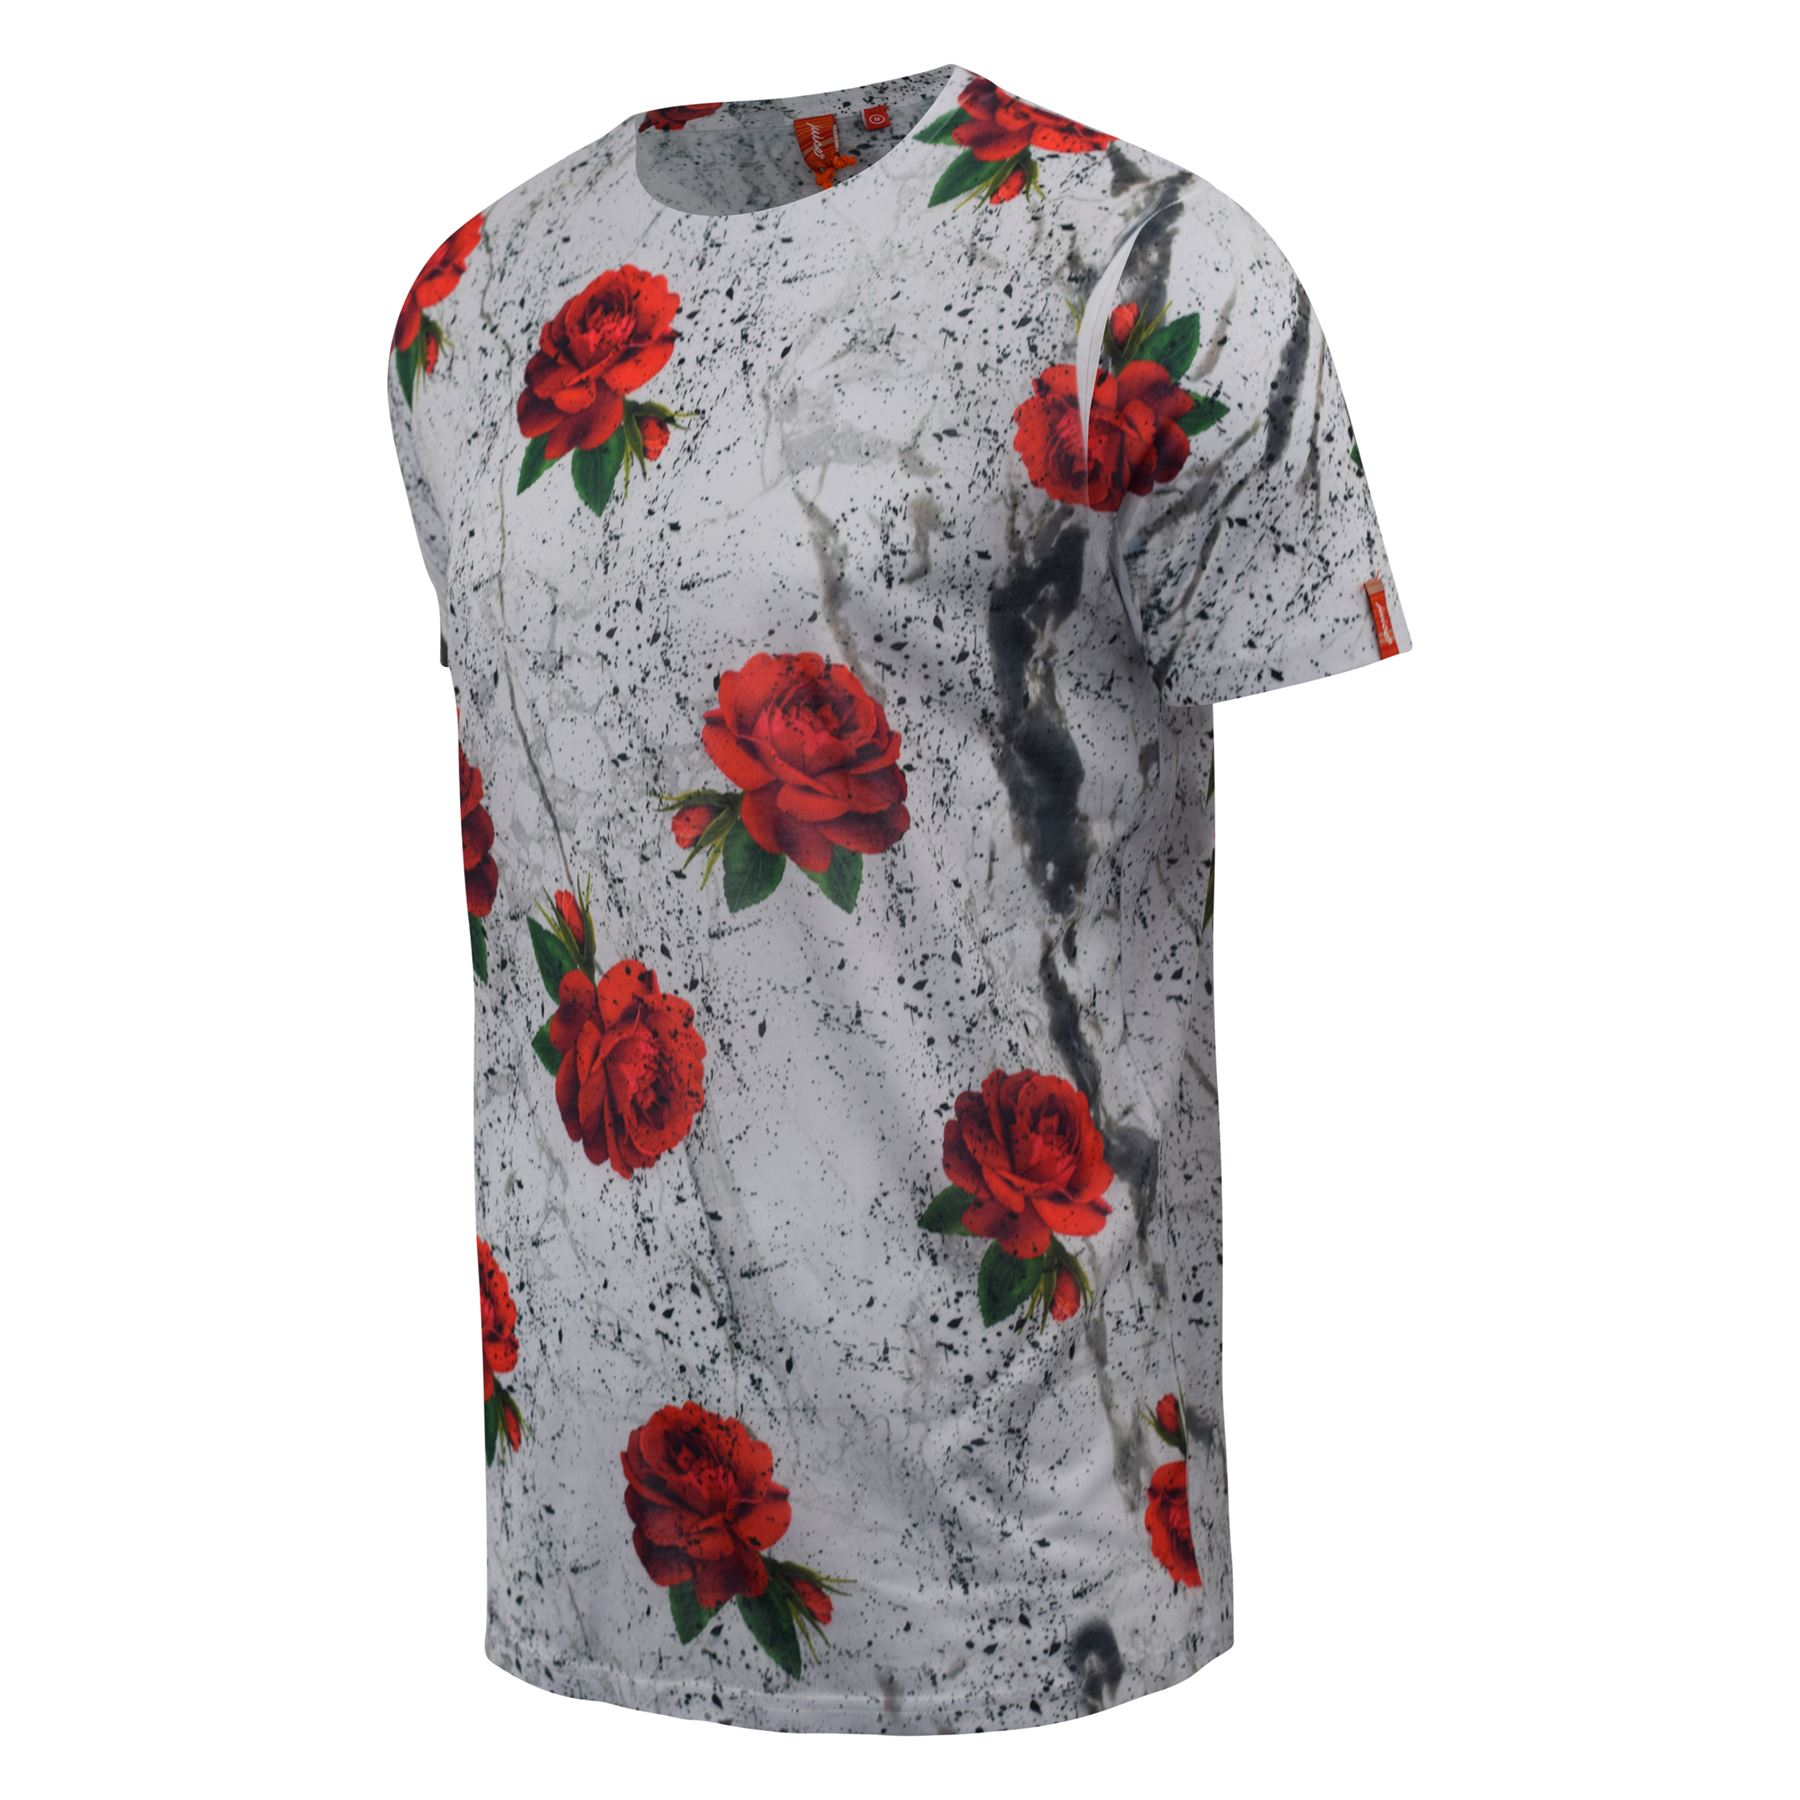 Mens-T-Shirt-Juice-Floral-Print-Flower-Crew-Neck-Tee-Top thumbnail 9